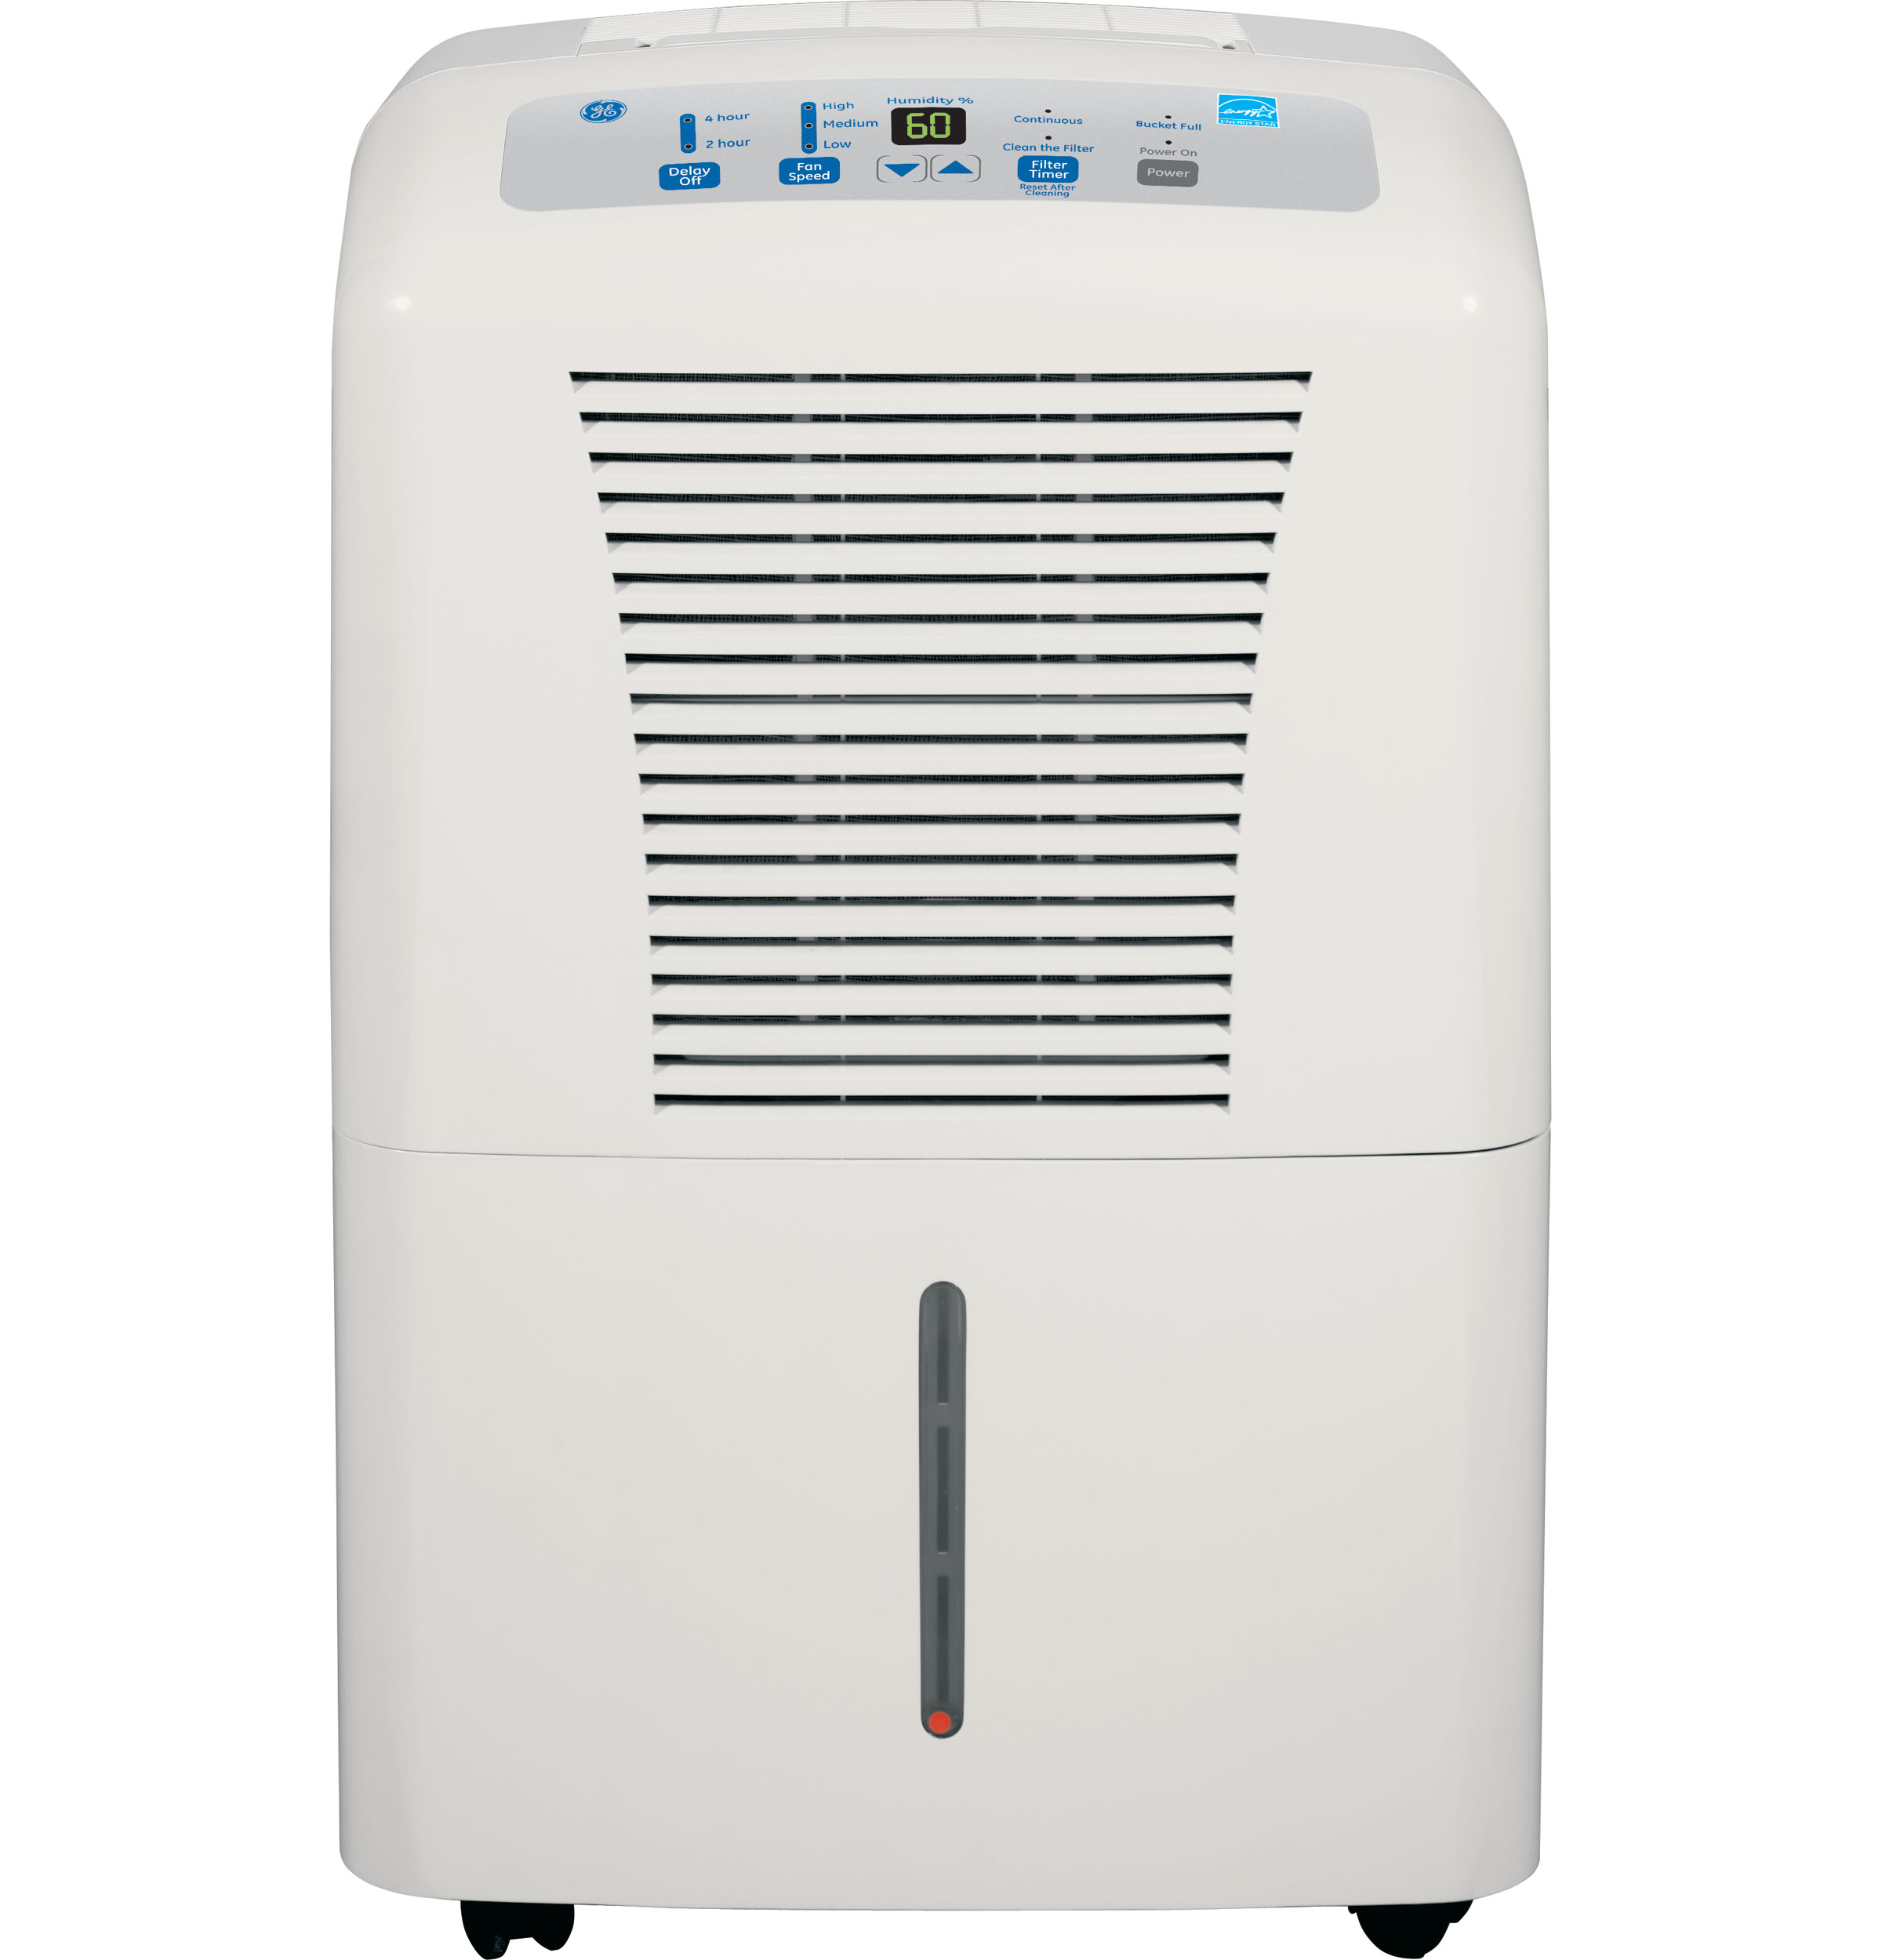 GE® Dehumidifier AHR30LL GE Appliances #0B8FC0